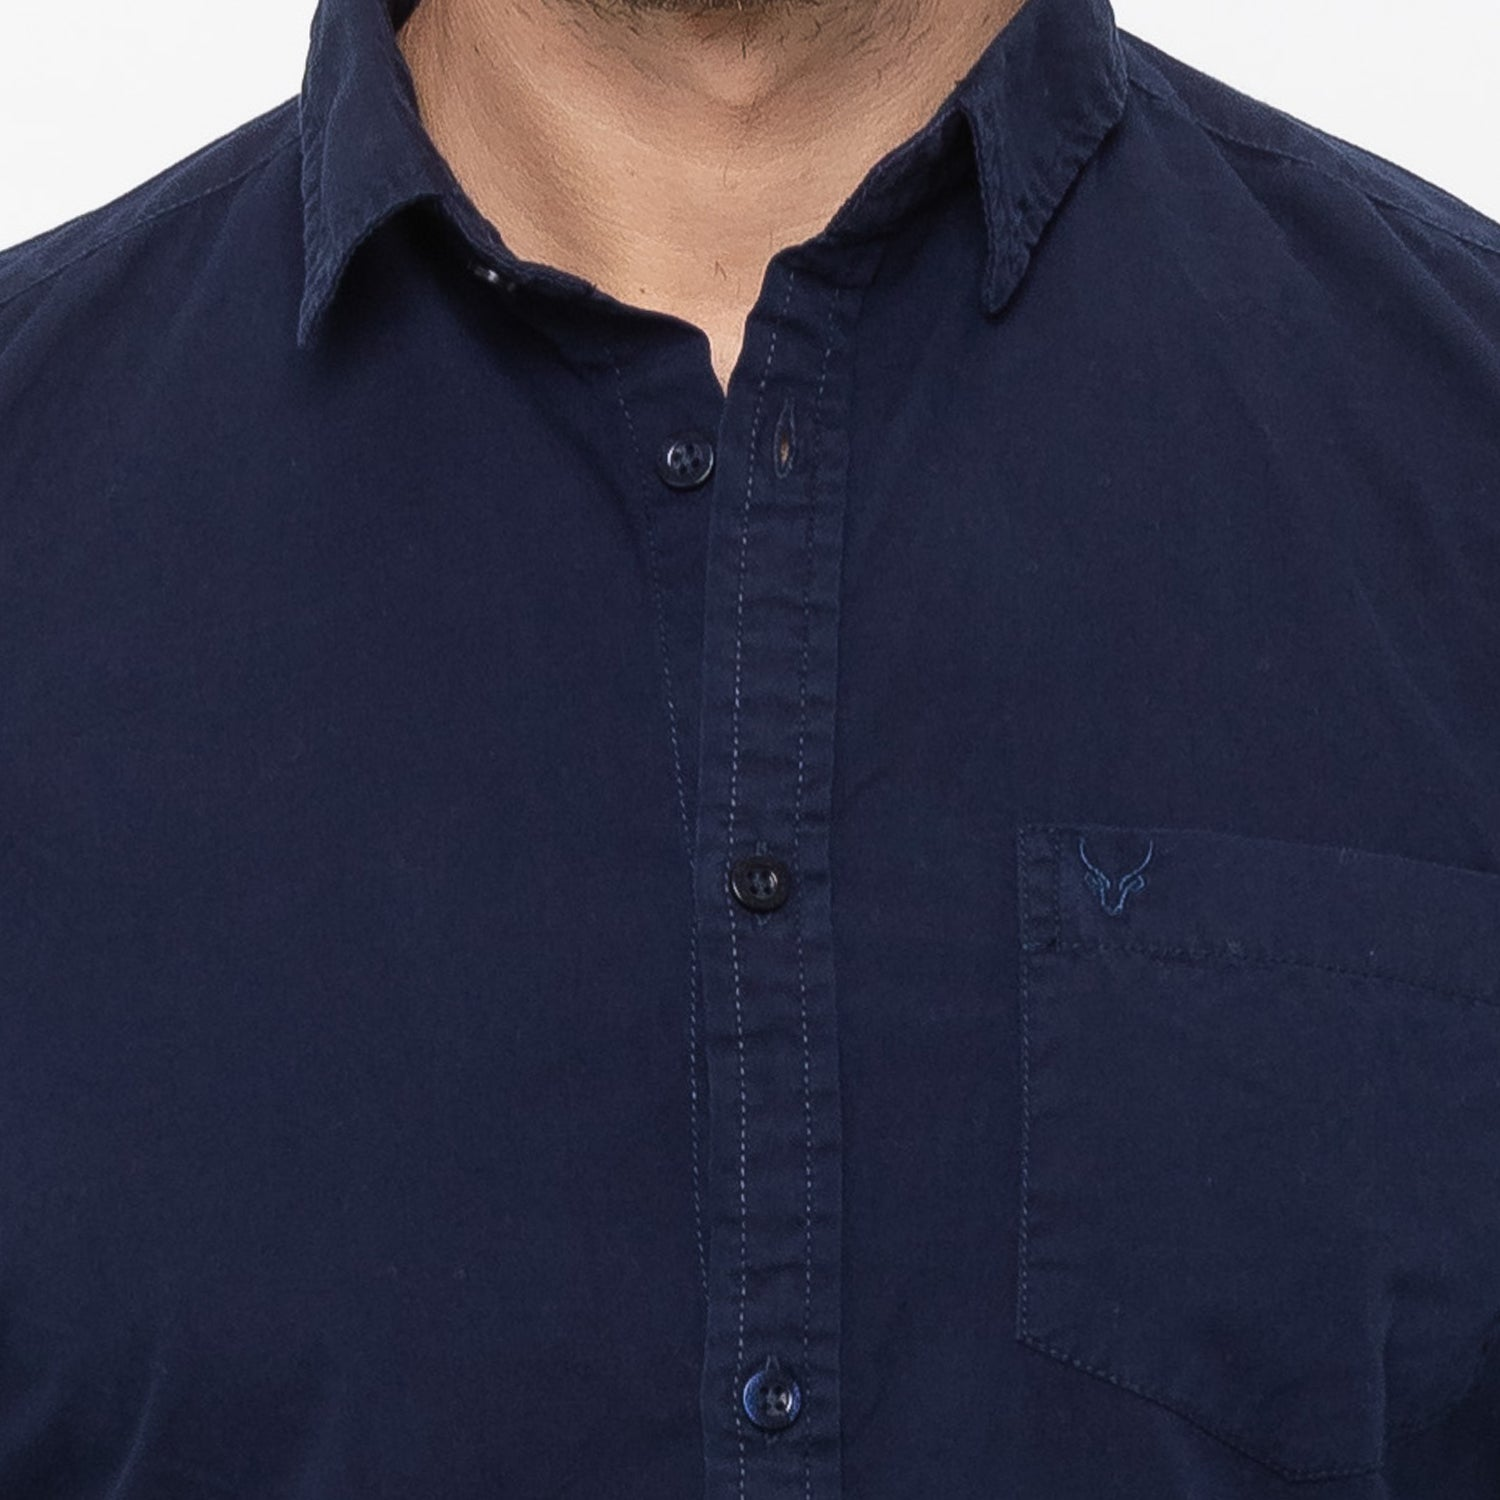 Globus Navy Blue Solid Shirt-5